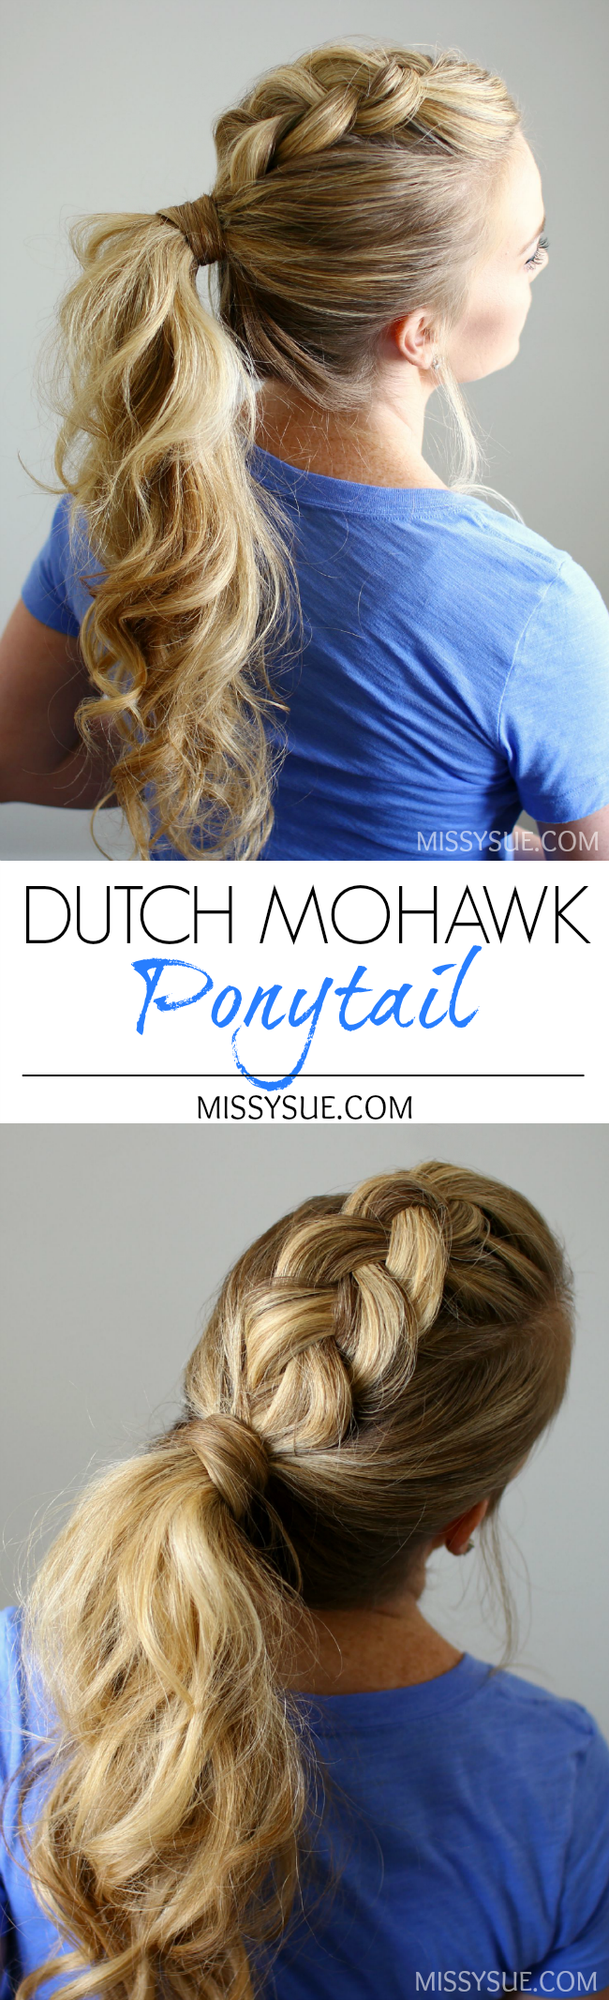 Pump up your pony with a chic dutch braid this hairstyle is so cute